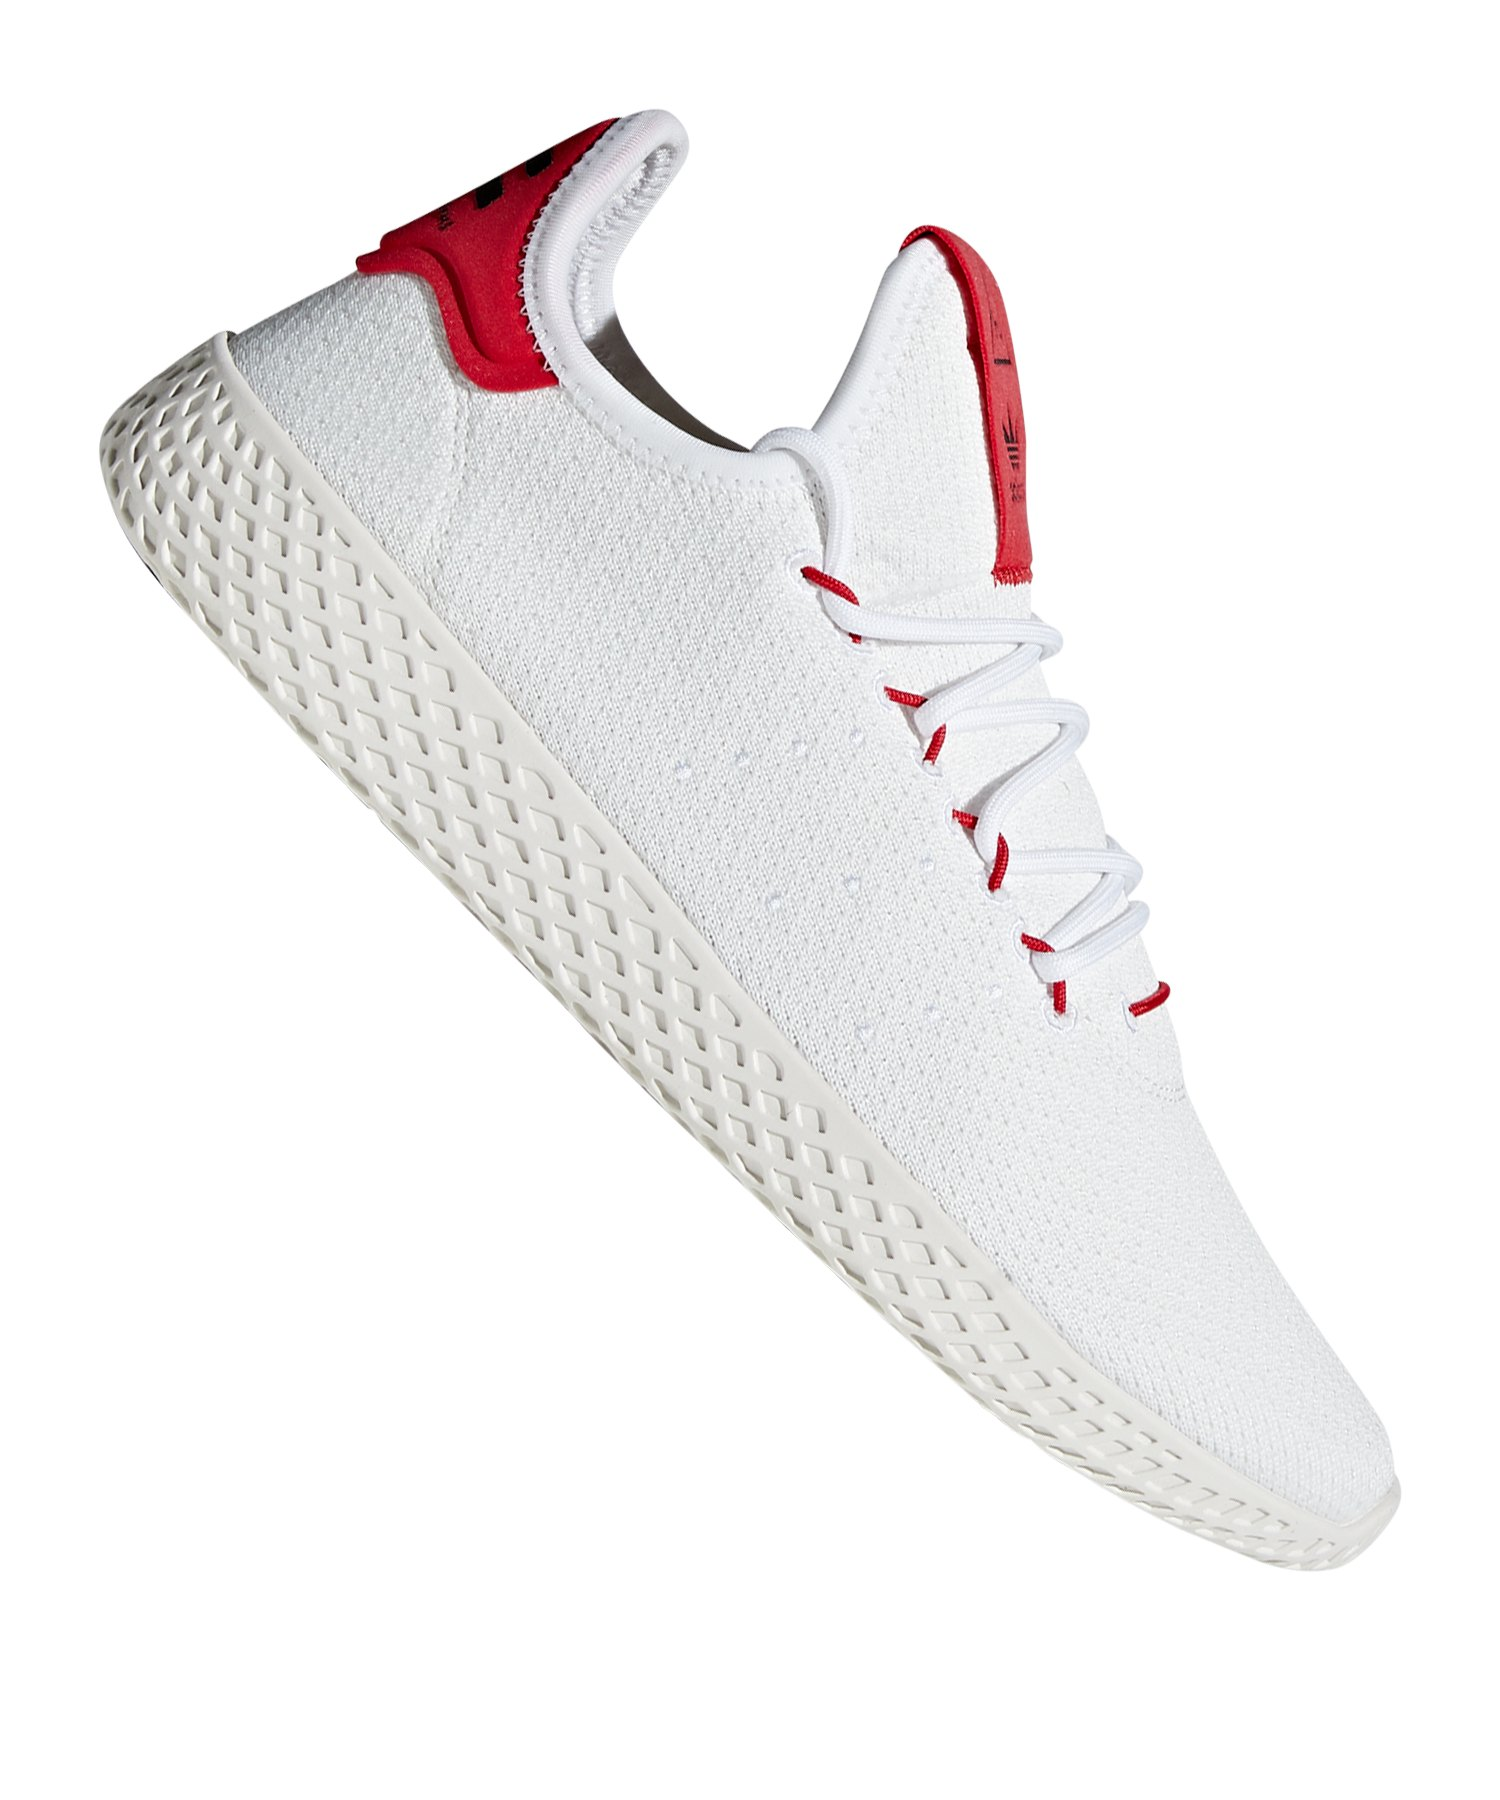 free shipping 0e7aa 53f47 adidas Originals PW Tennis HU Sneaker Weiss Rot - weiss